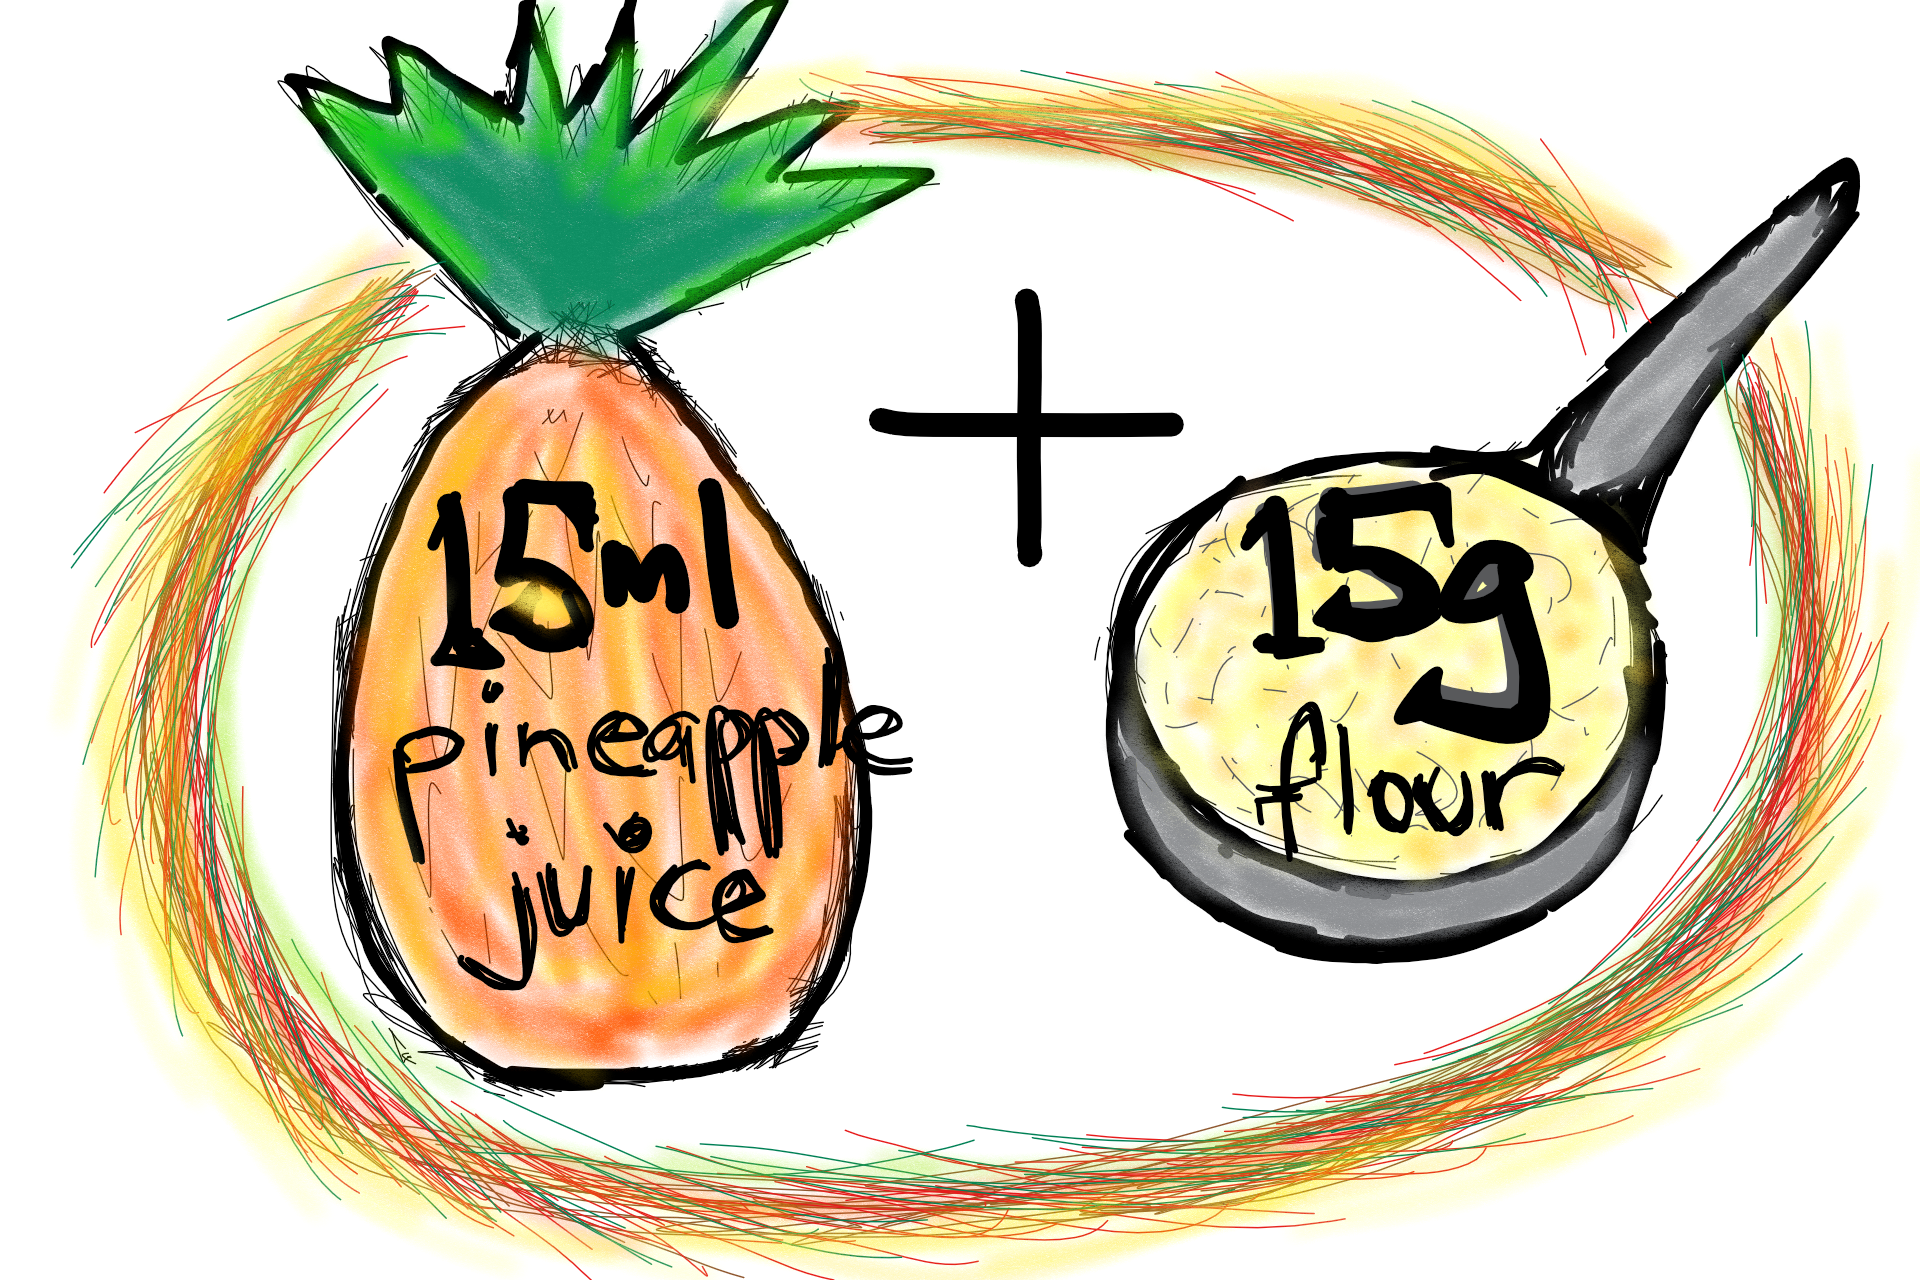 Day 1 - In your container, mix one tablespoon of wholegrain flour to one tablespoon of unsweetened pineapple juice.